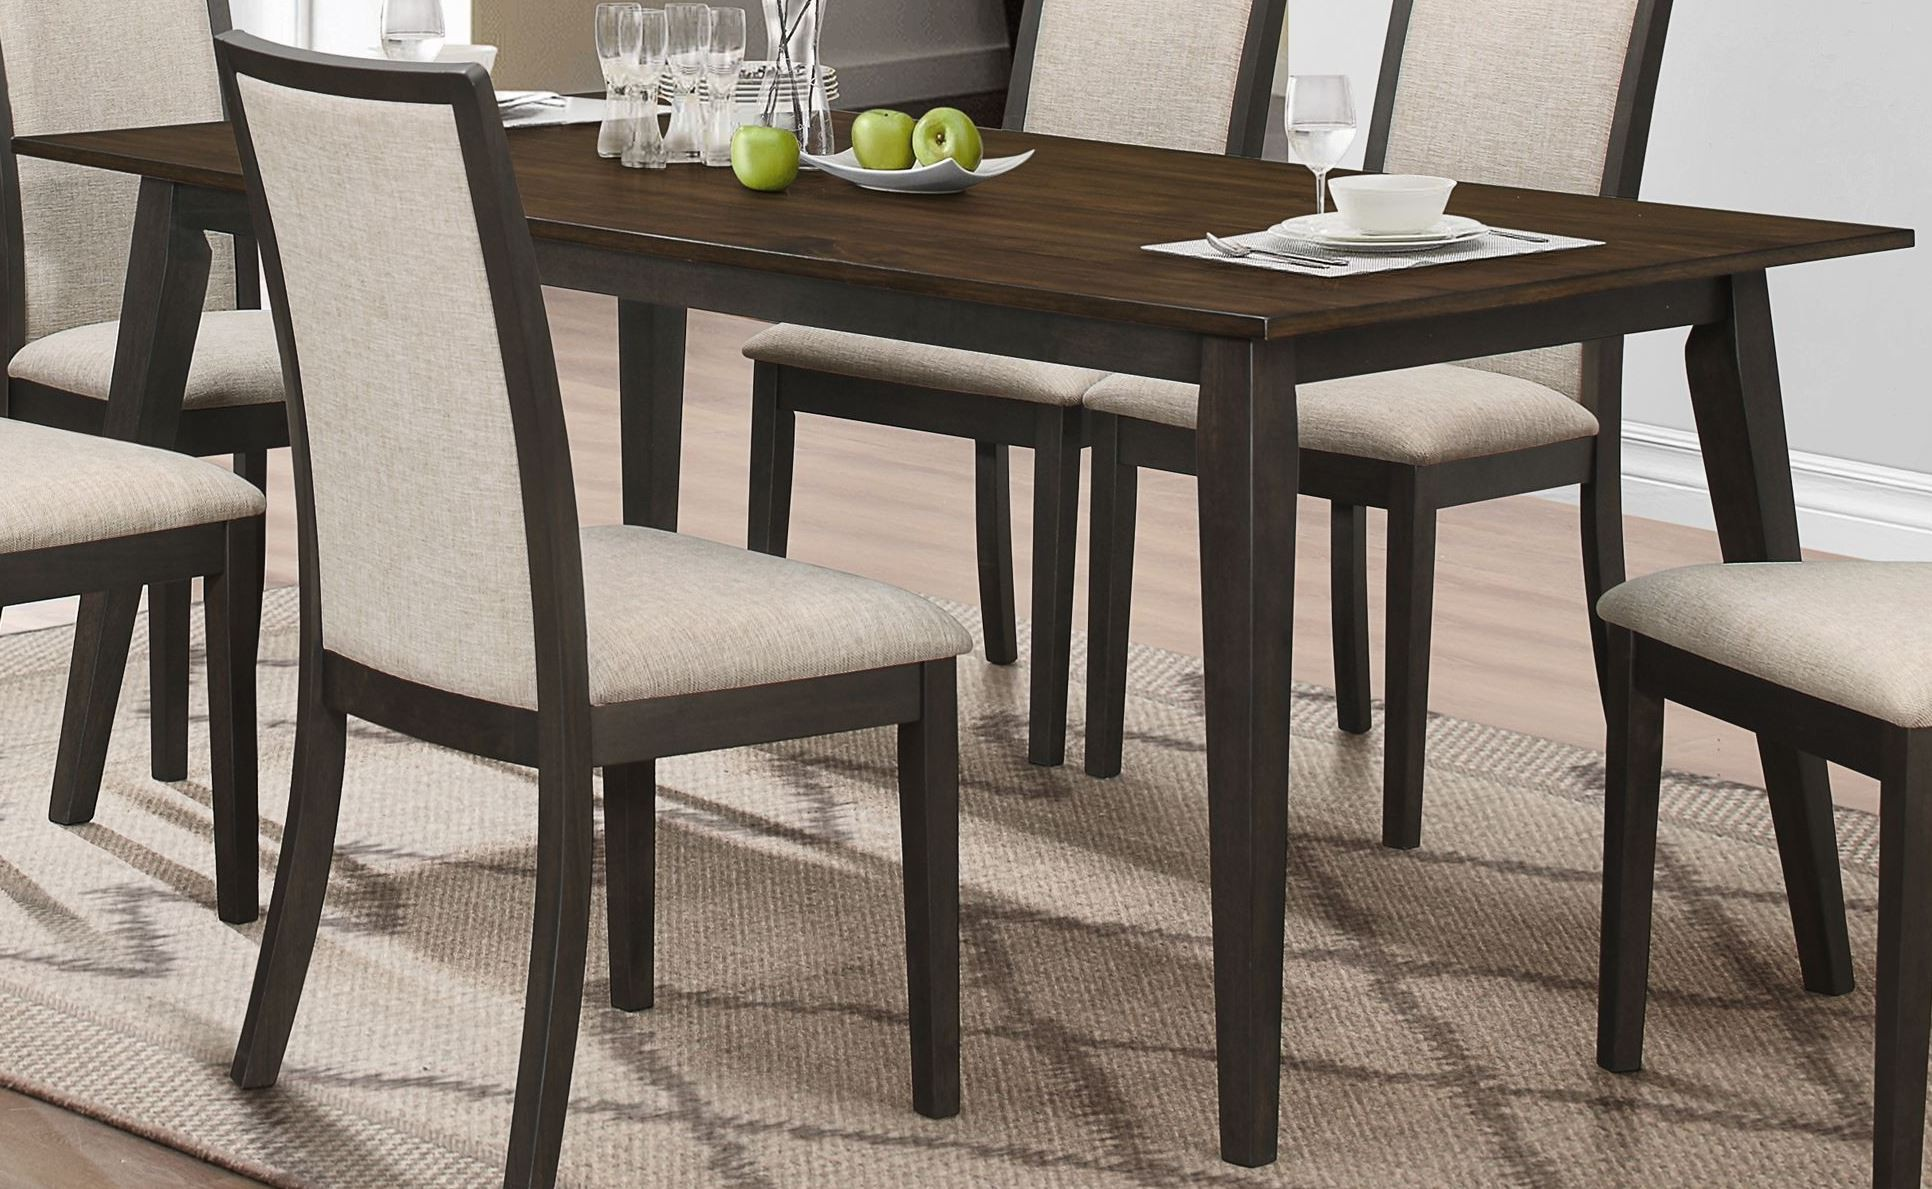 Studio 26 Antique Oak And Black Dining Table From New